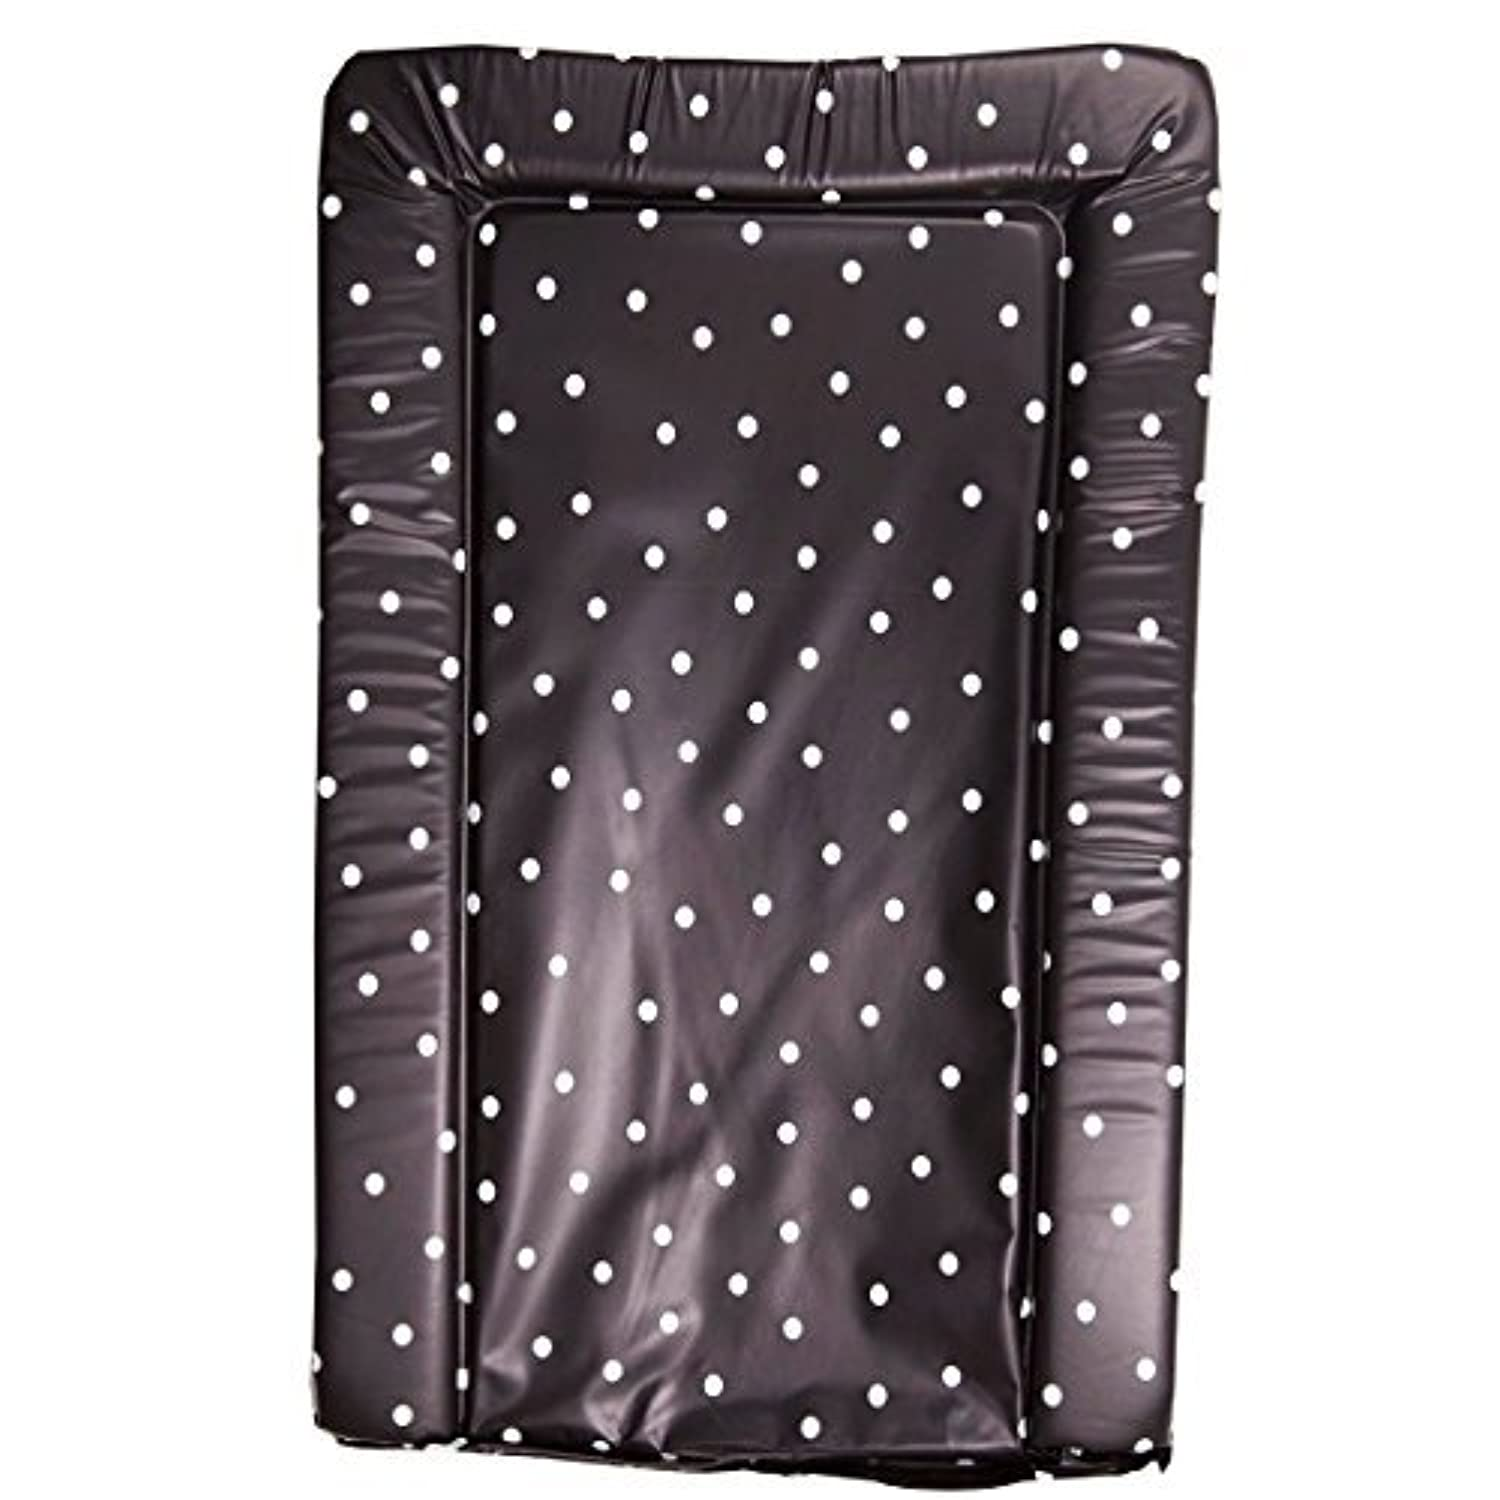 It's A Baby Changing Mat (Black With White Polka Dots) by It's A Baby